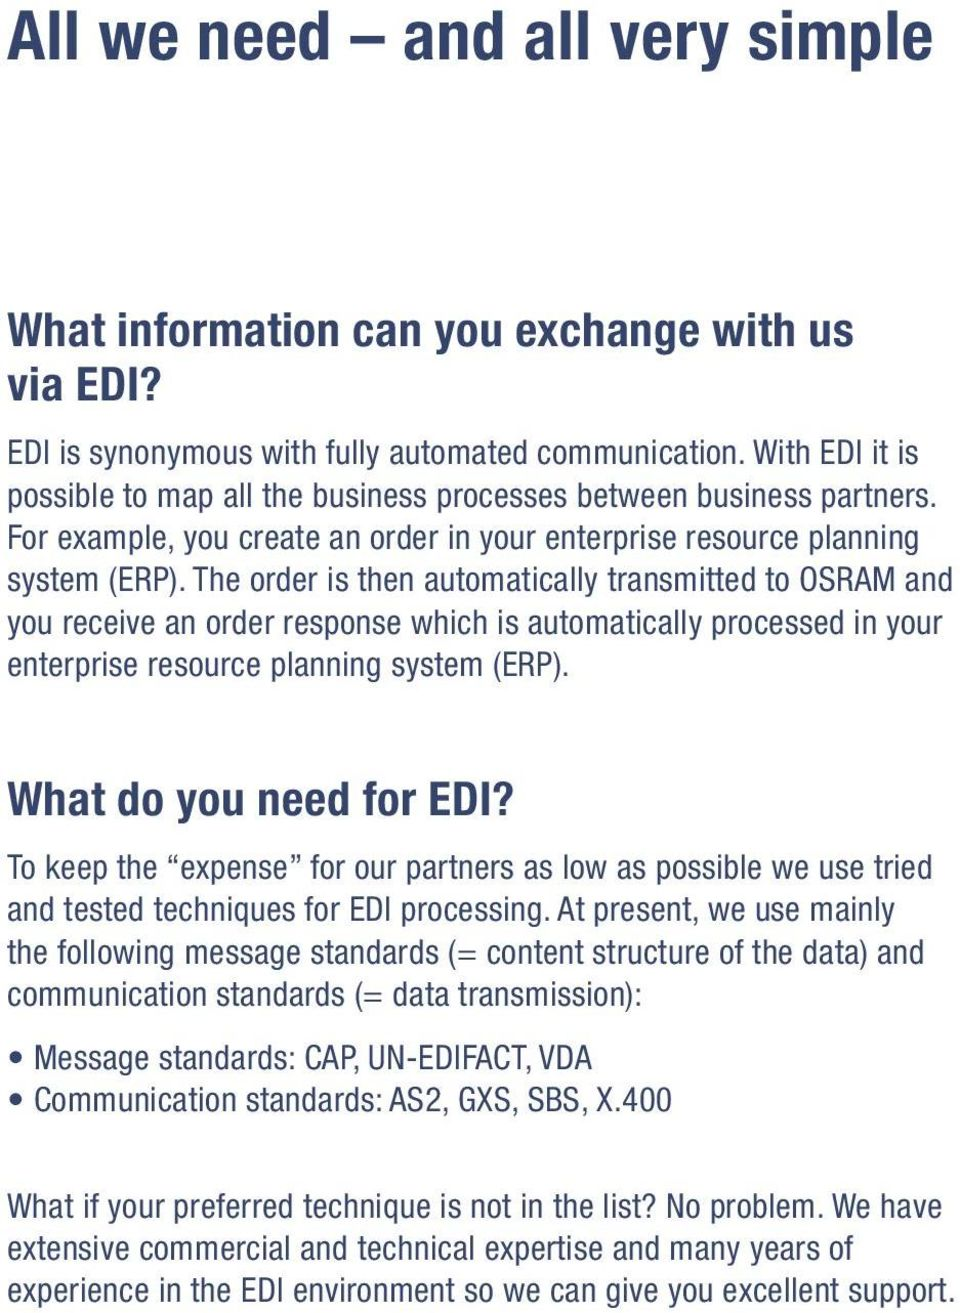 The order is then automatically transmitted to OSRAM and you receive an order response which is automatically processed in your enterprise resource planning system (ERP). What do you need for EDI?